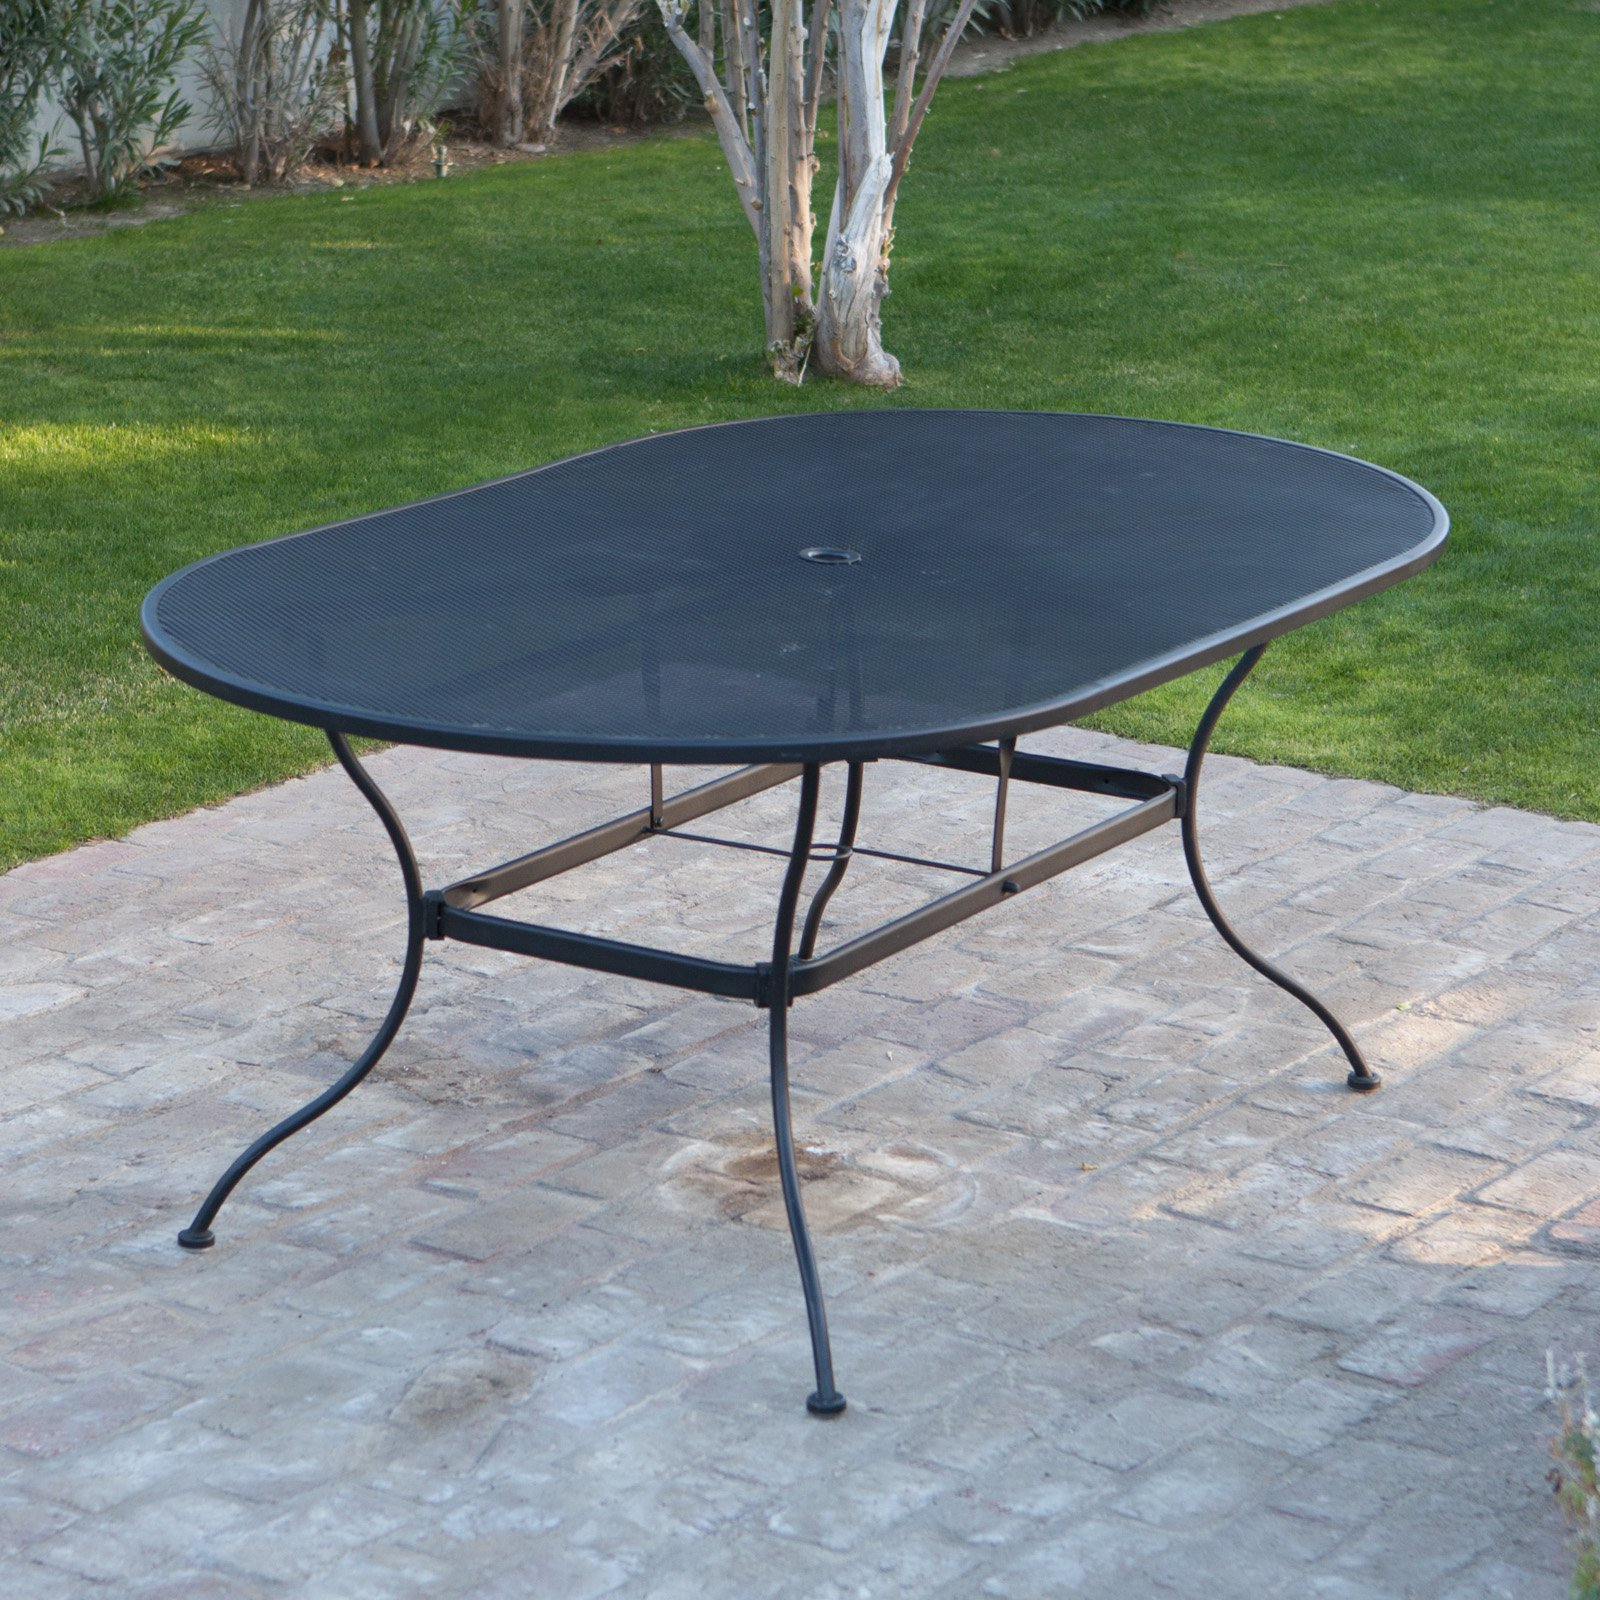 Oval Wrought Iron Patio Dining Table By Woodard Textured Black